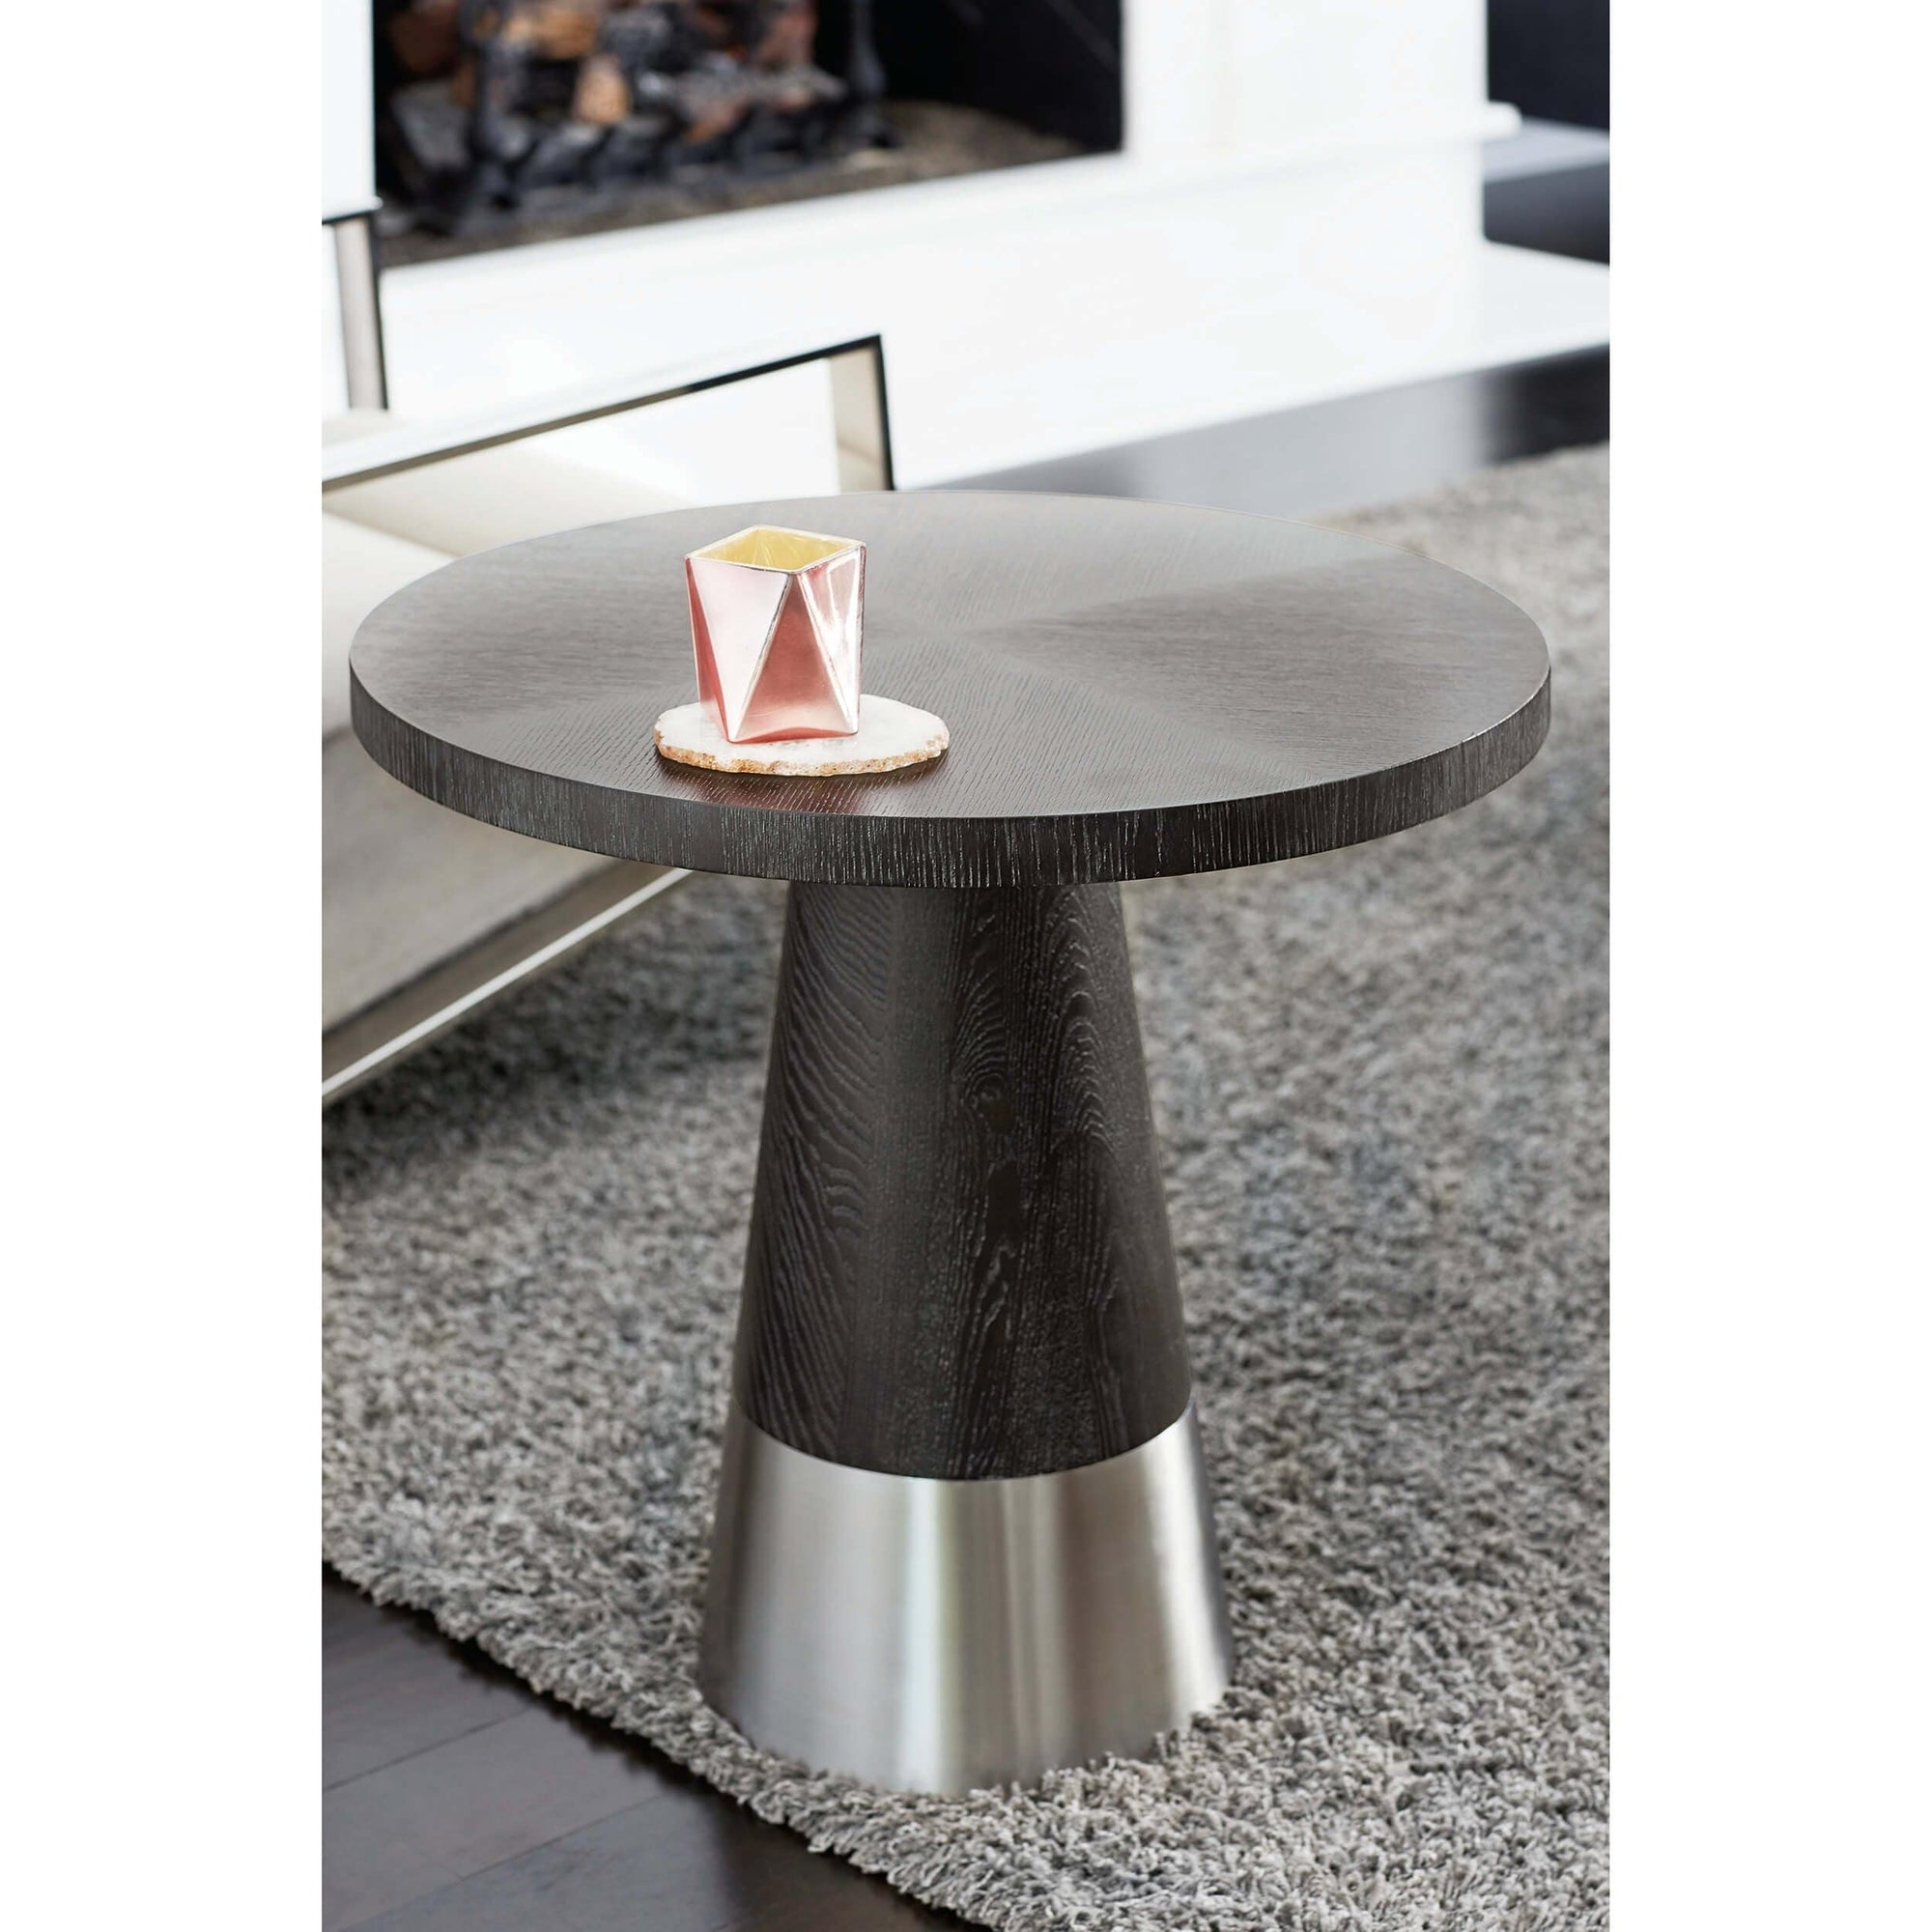 Decorage Round End Table High Fashion Home